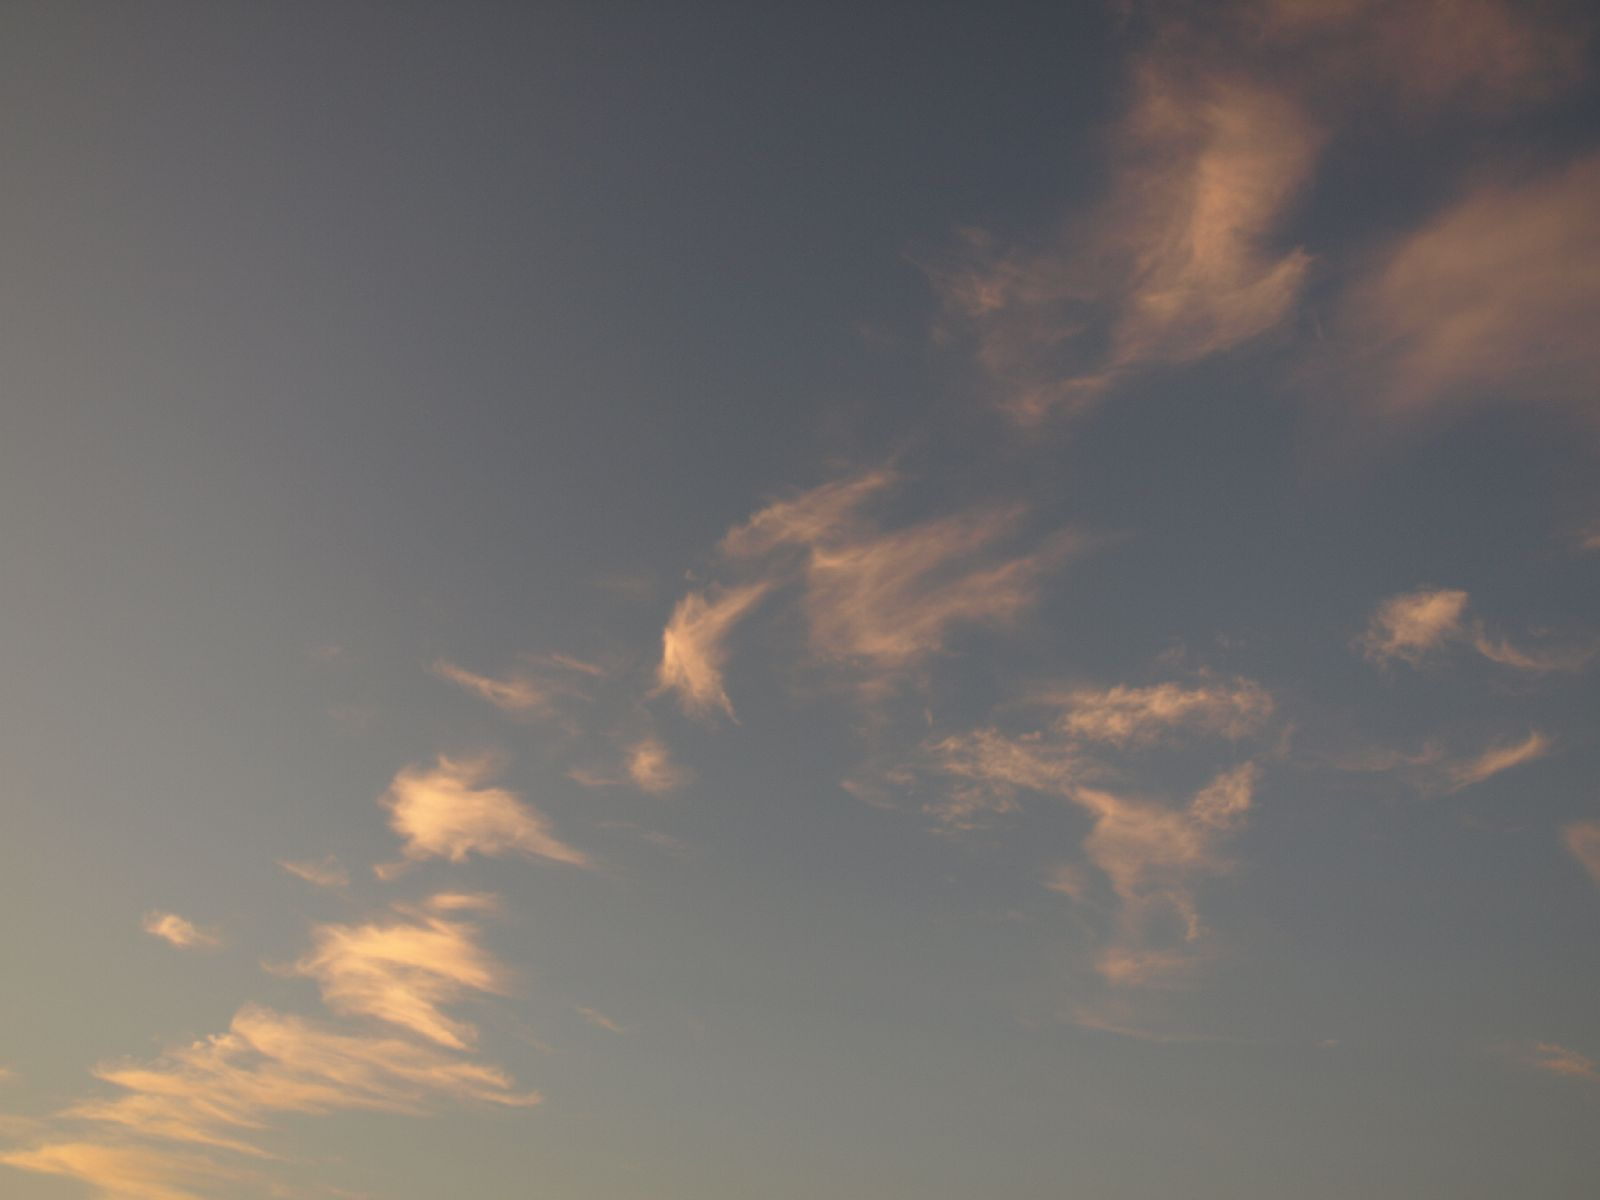 Sky_Clouds_Photo_Texture_A_P9144885